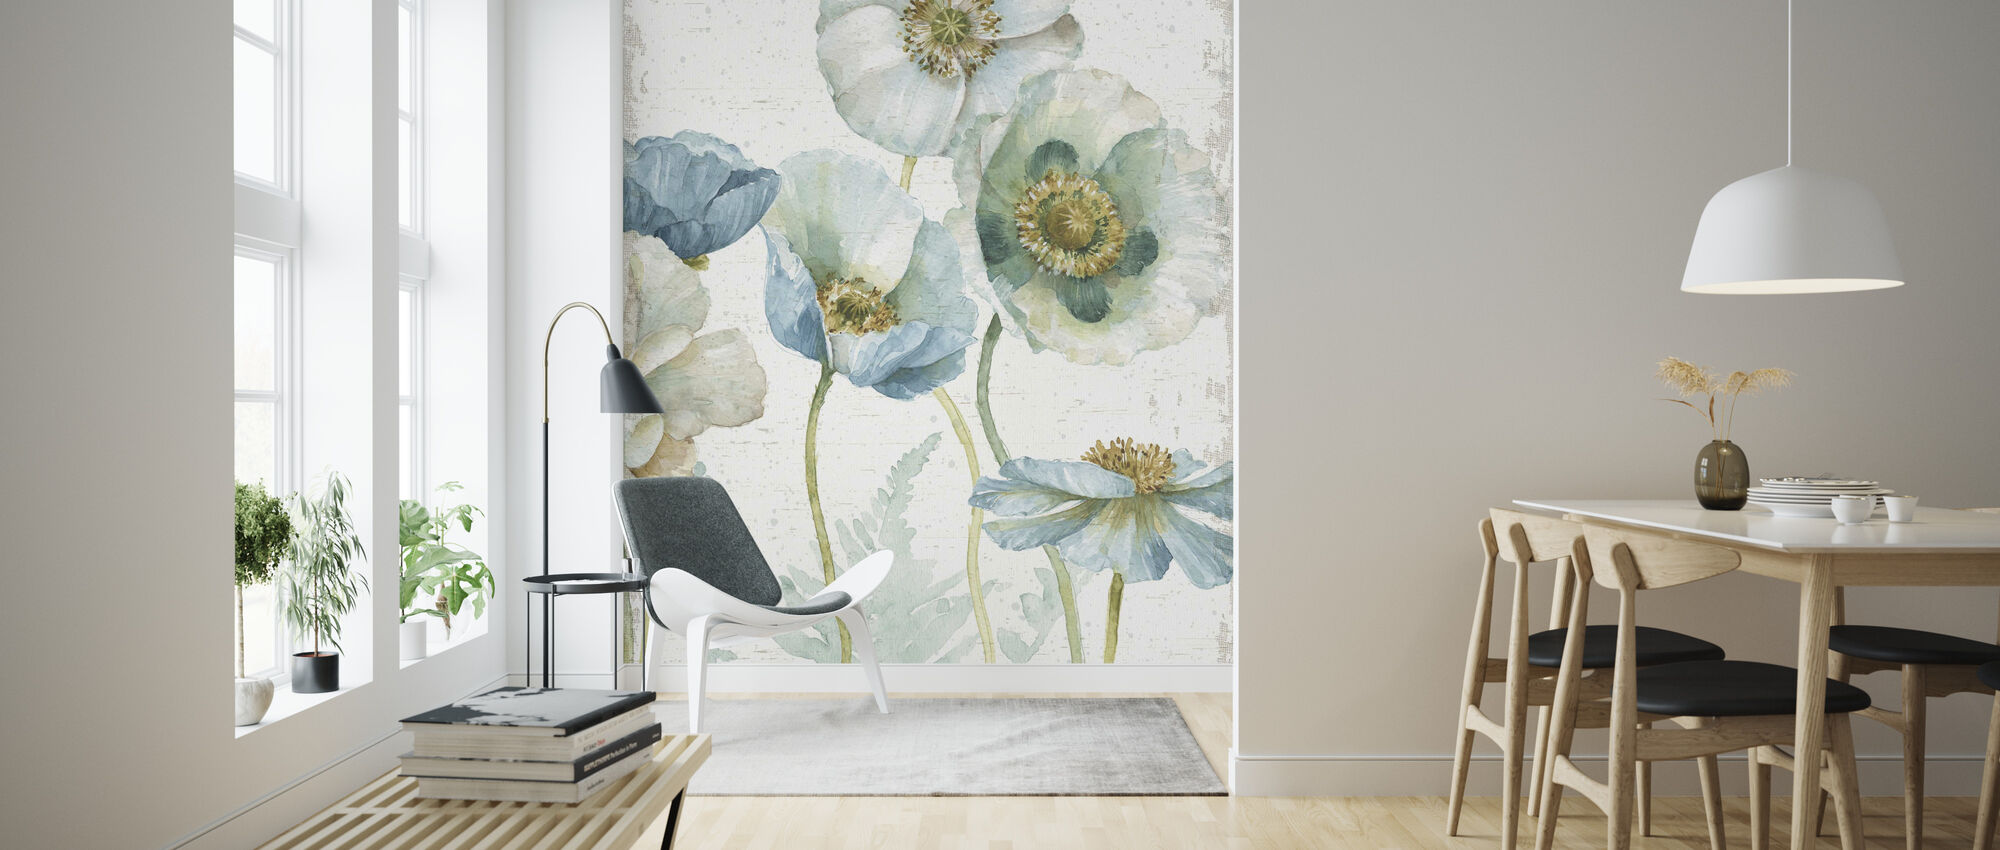 My Greenhouse Flowers on Wood - Wallpaper - Living Room